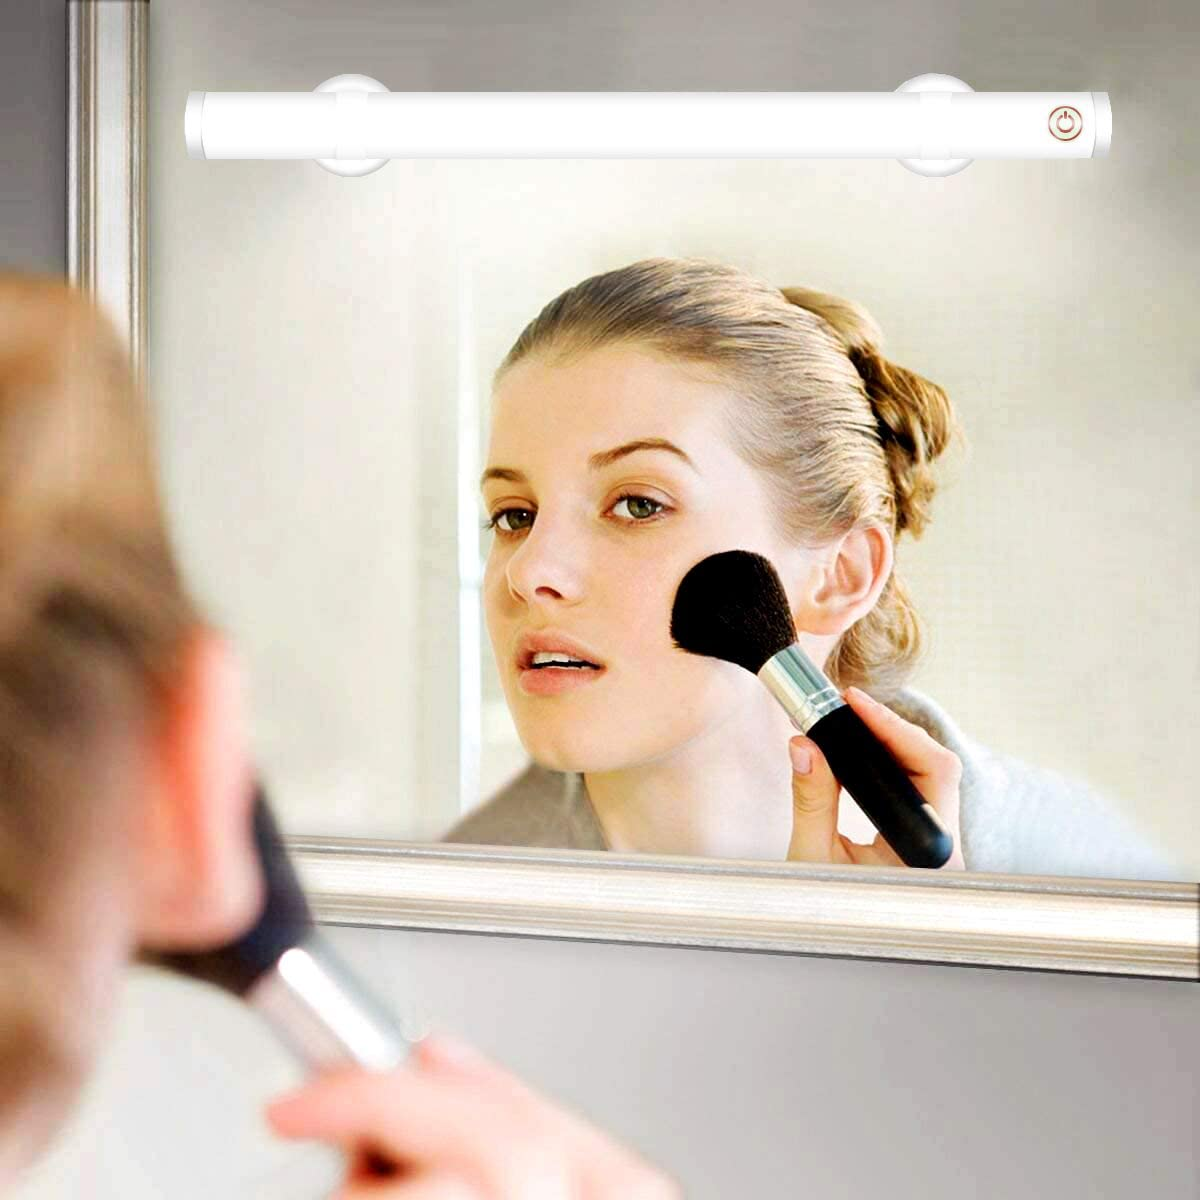 Wireless LED Makeup Mirror Lights, Portable Vanity Mirror Lights | Simulated Daylight | 4 Brightness Level Touch Control | Rechargeable, Makeup Lights Includes Makeup Brushes